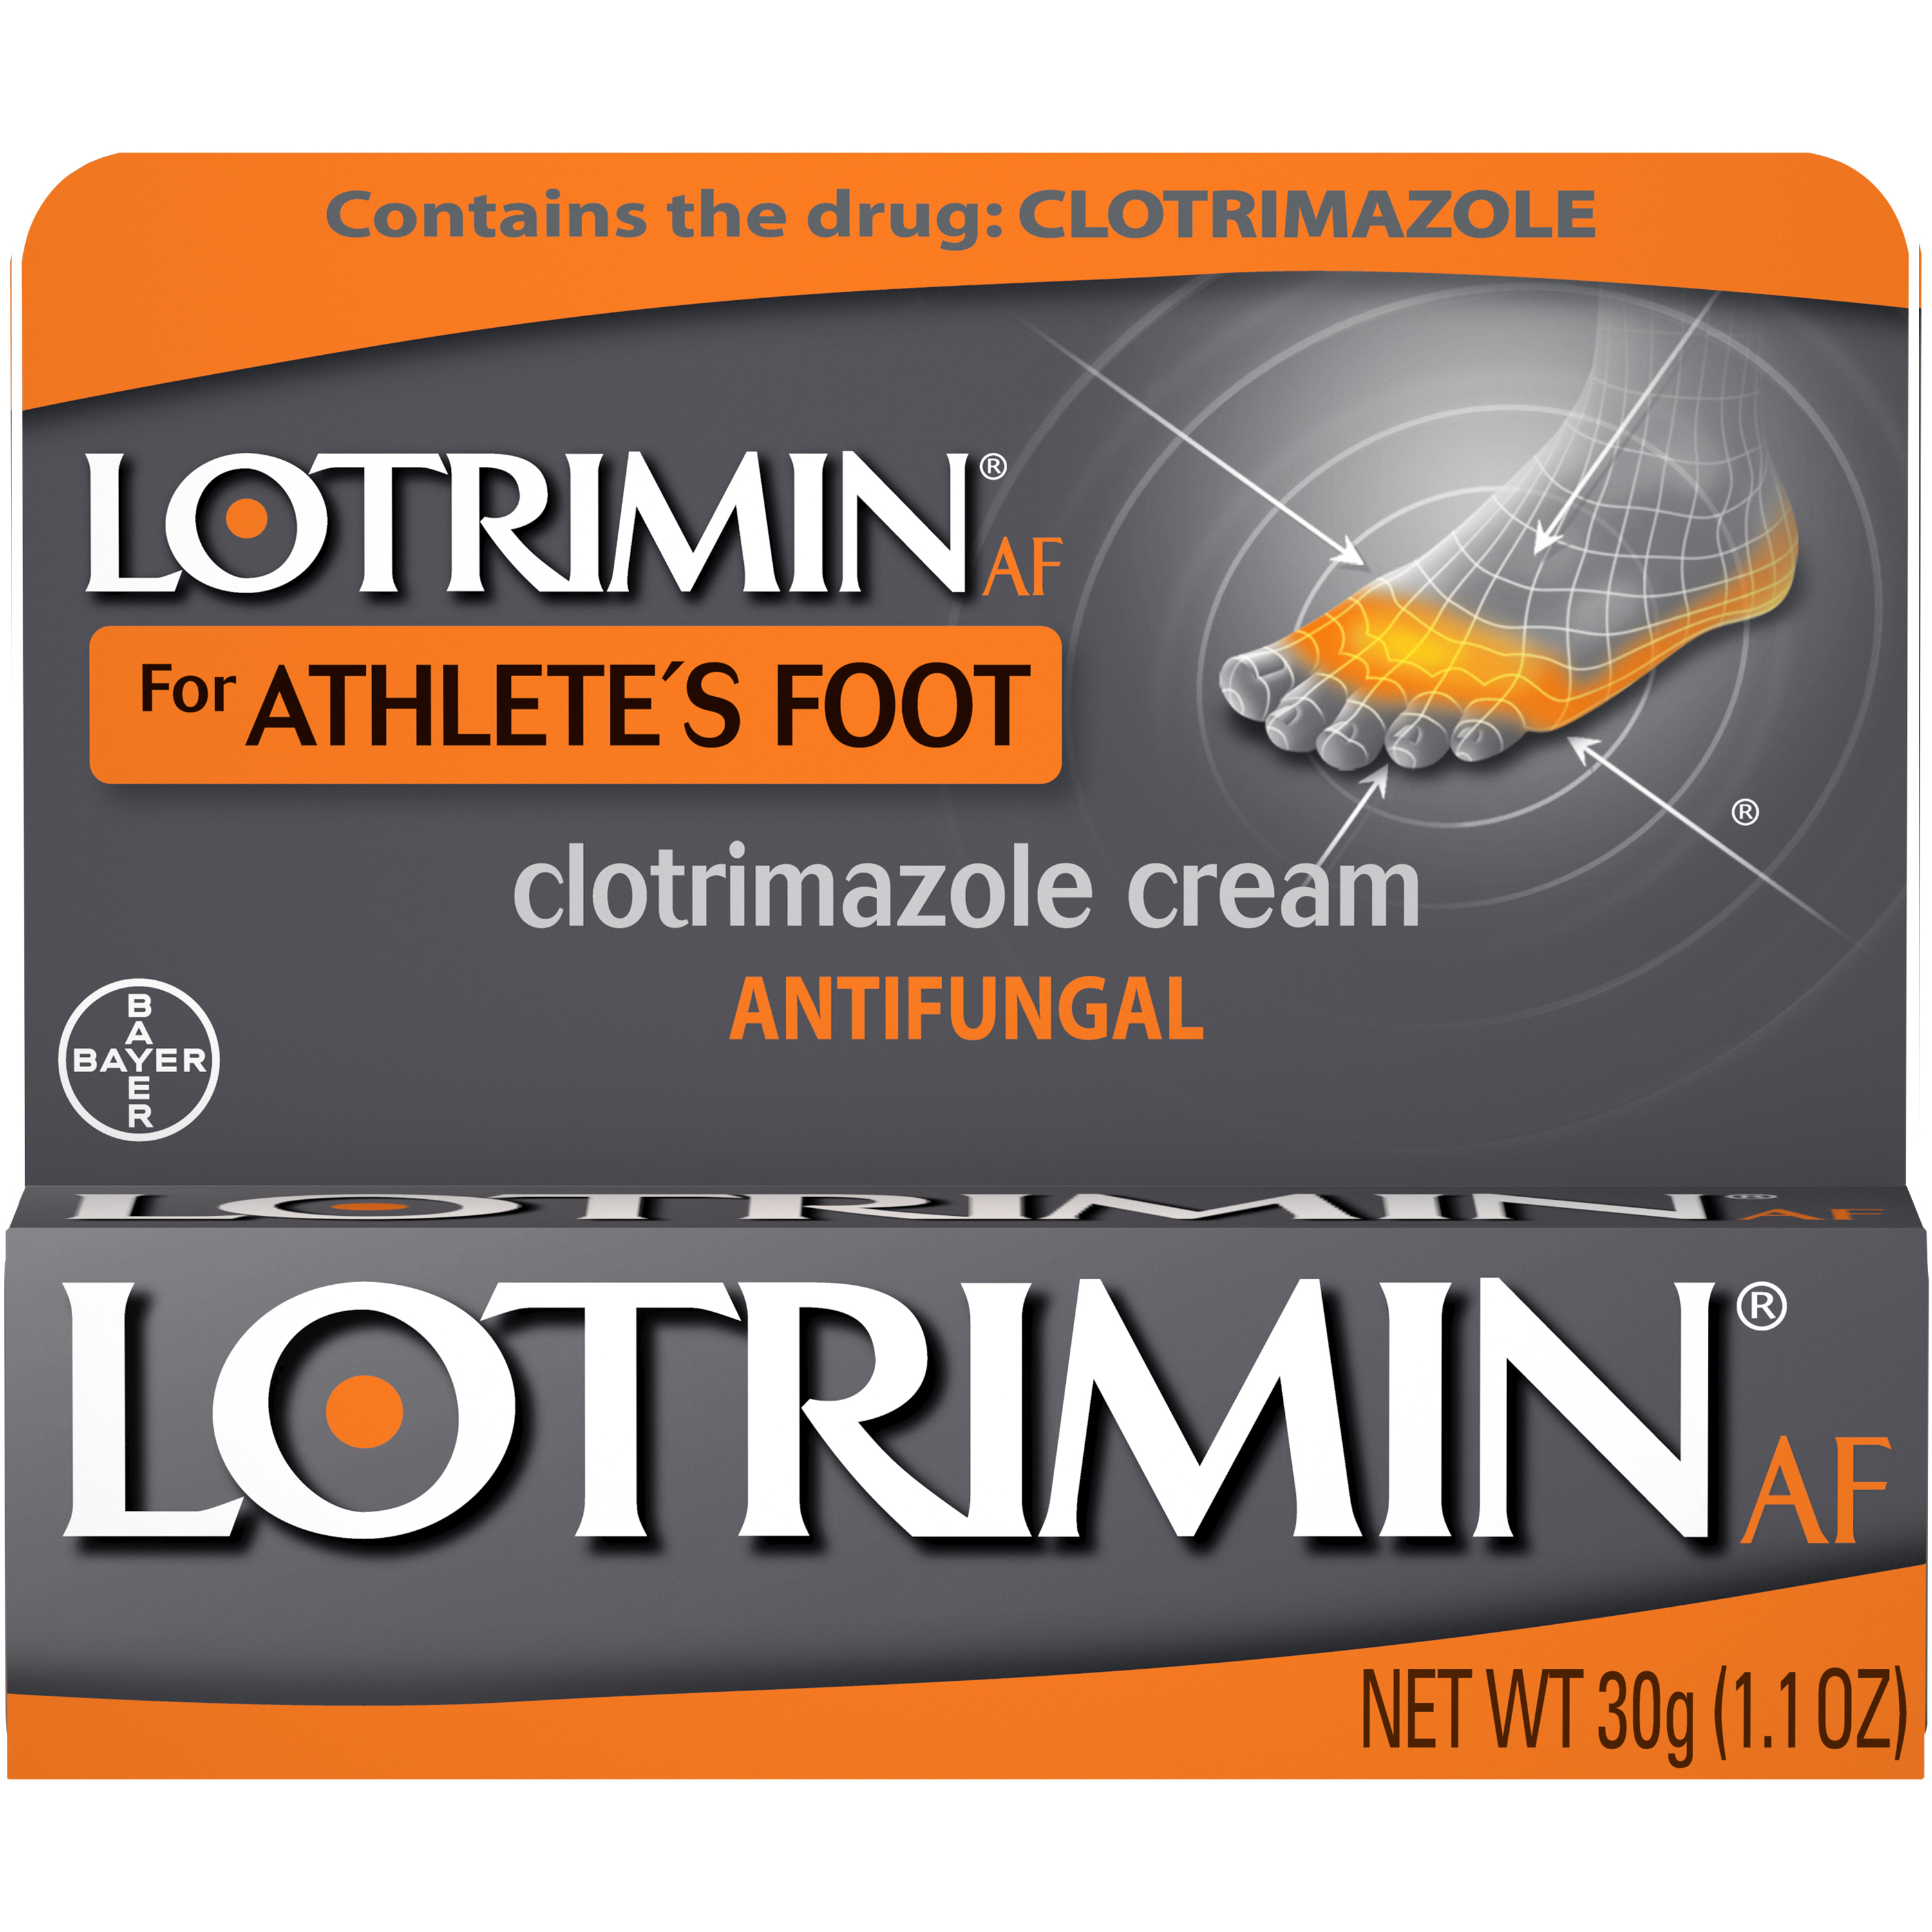 Lotrimin AF Athlete's Foot Antifungal Cream, 1.1 Ounce Tube